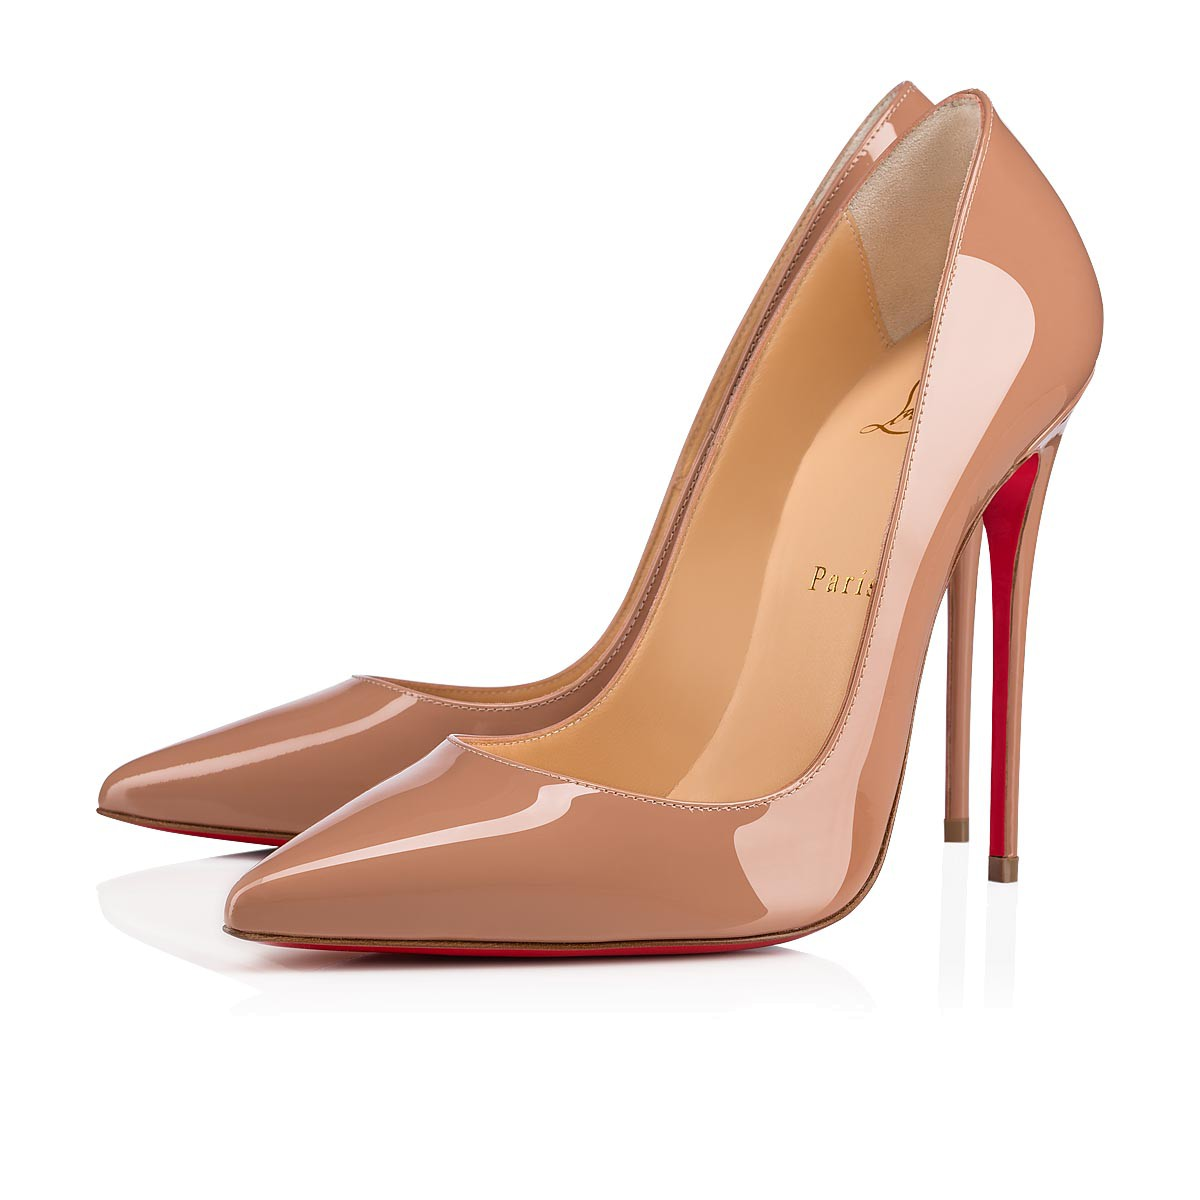 Shoes - So Kate - Christian Louboutin